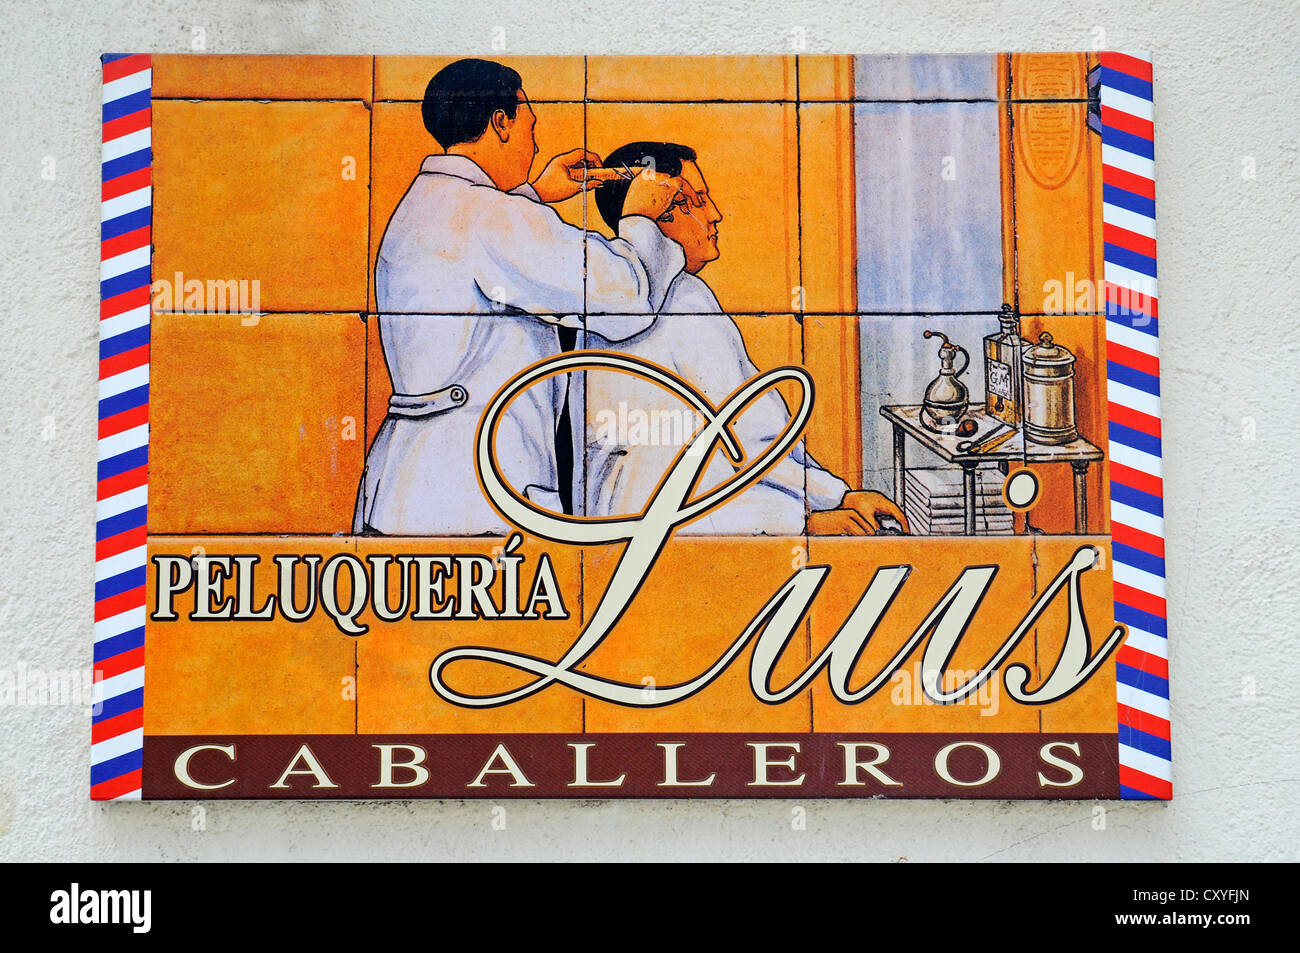 Spanish tiles, azulejos, sign for a barber or hairdresser, Aranjuez, Spain, Europe, PublicGround - Stock Image